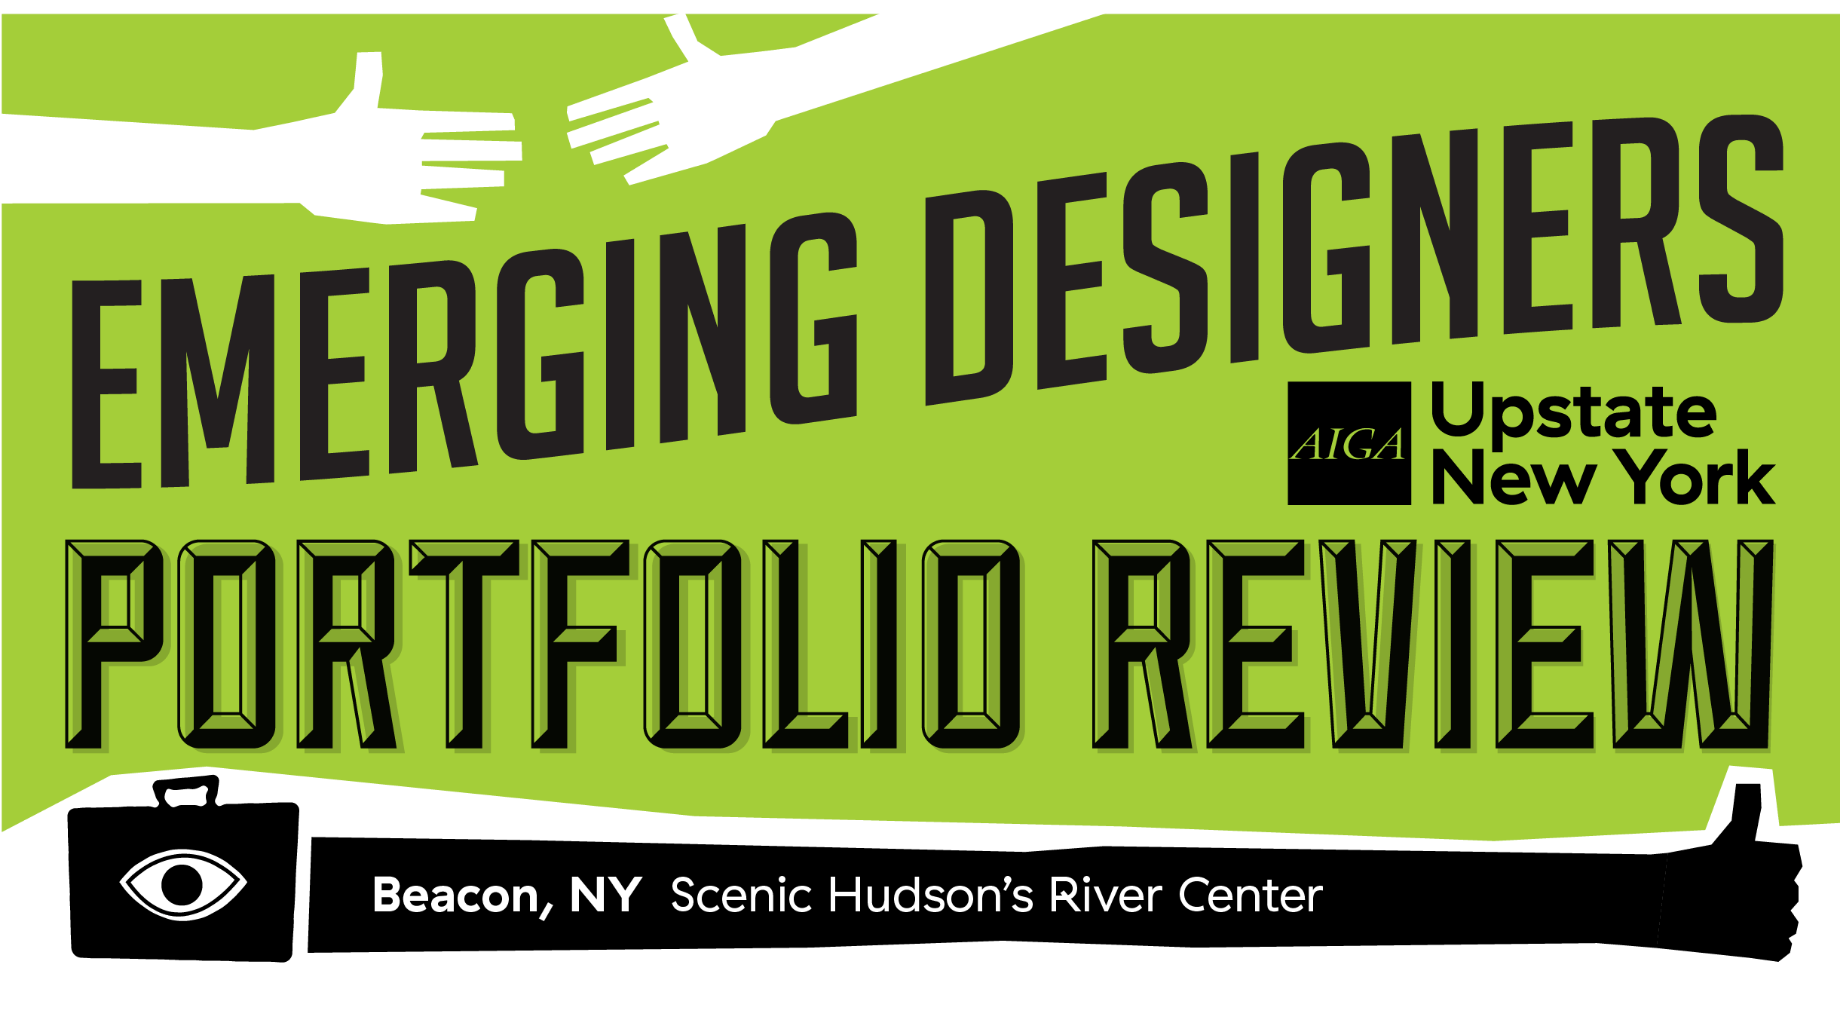 Emerging Designers Portfolio Review - Beacon!